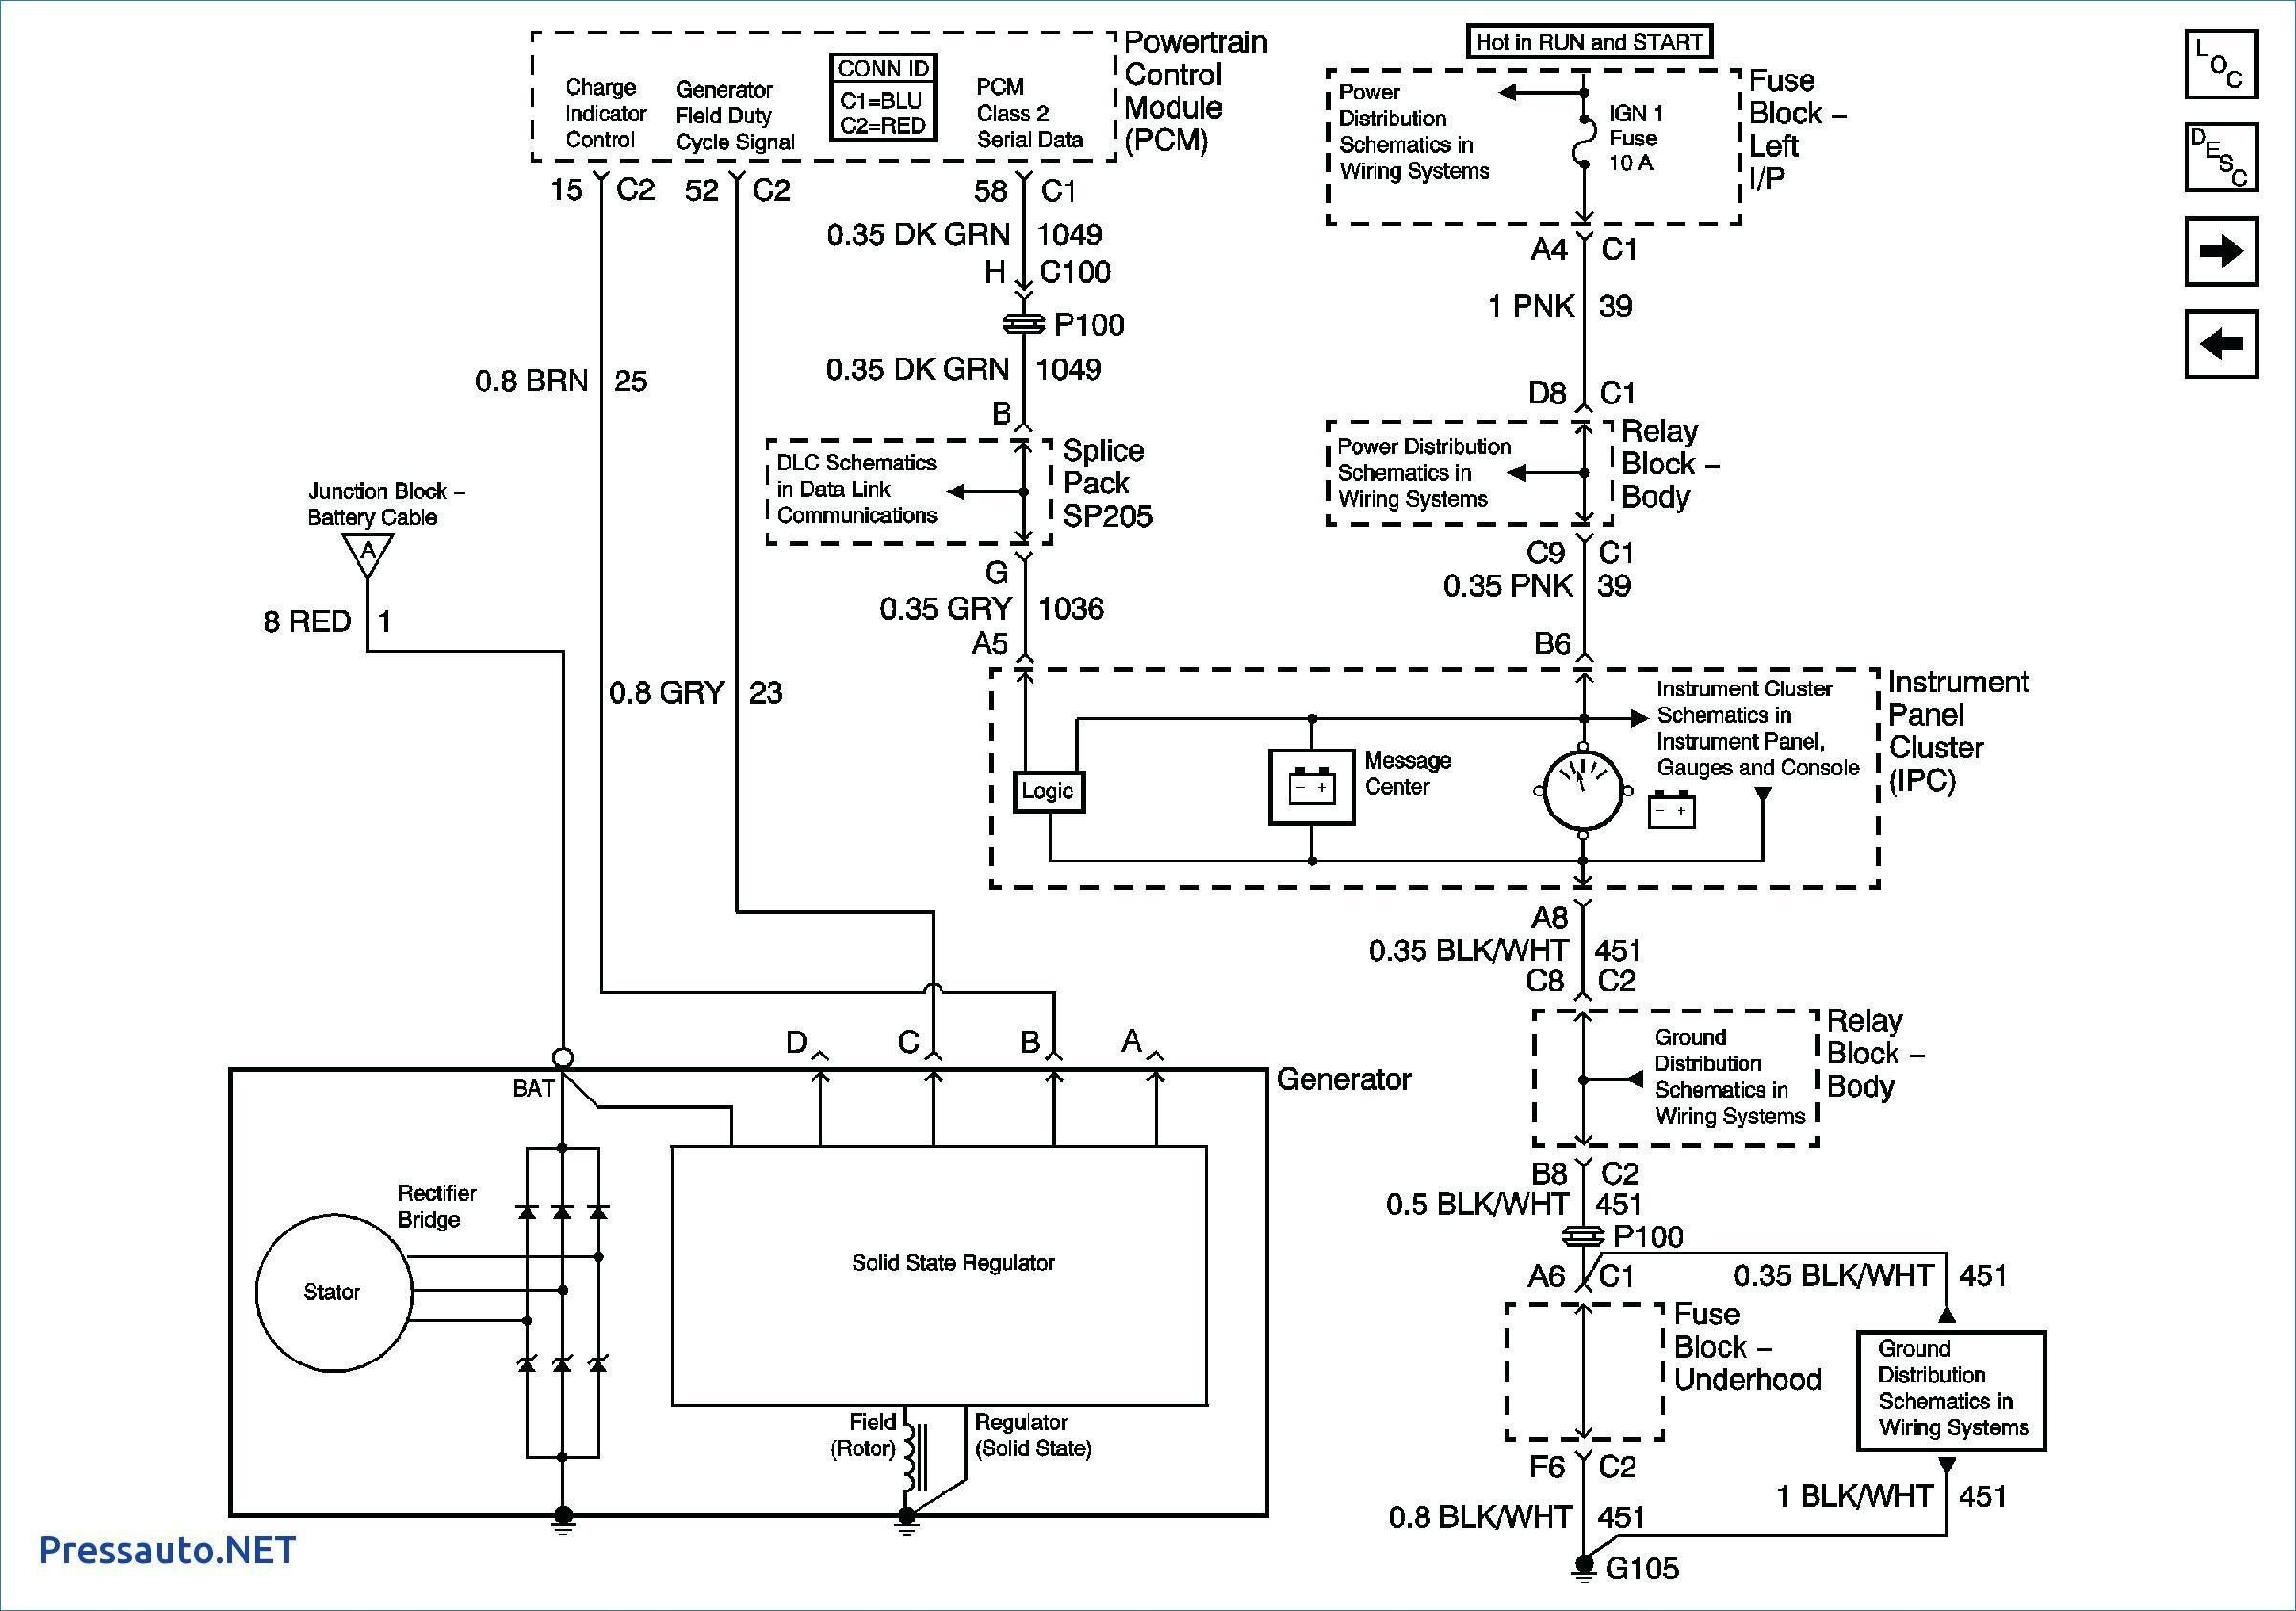 Ignition Coil Wiring Diagram Inspirational In 2020 Electrical Wiring Diagram Diagram Alternator